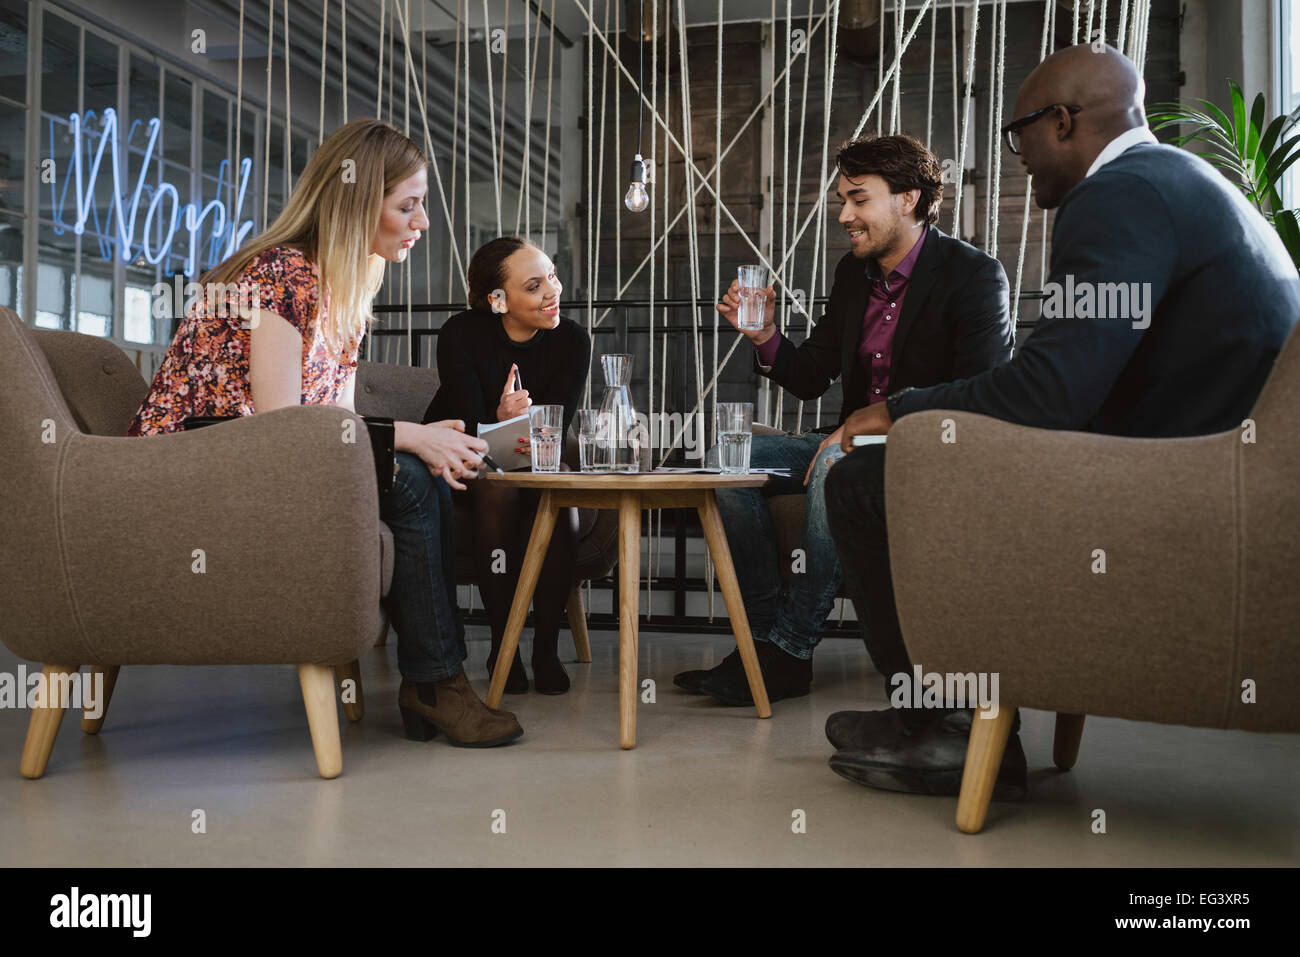 Multiracial business team sitting in office lobby discussing new business ideas. Young man drinking water. Happy - Stock Image